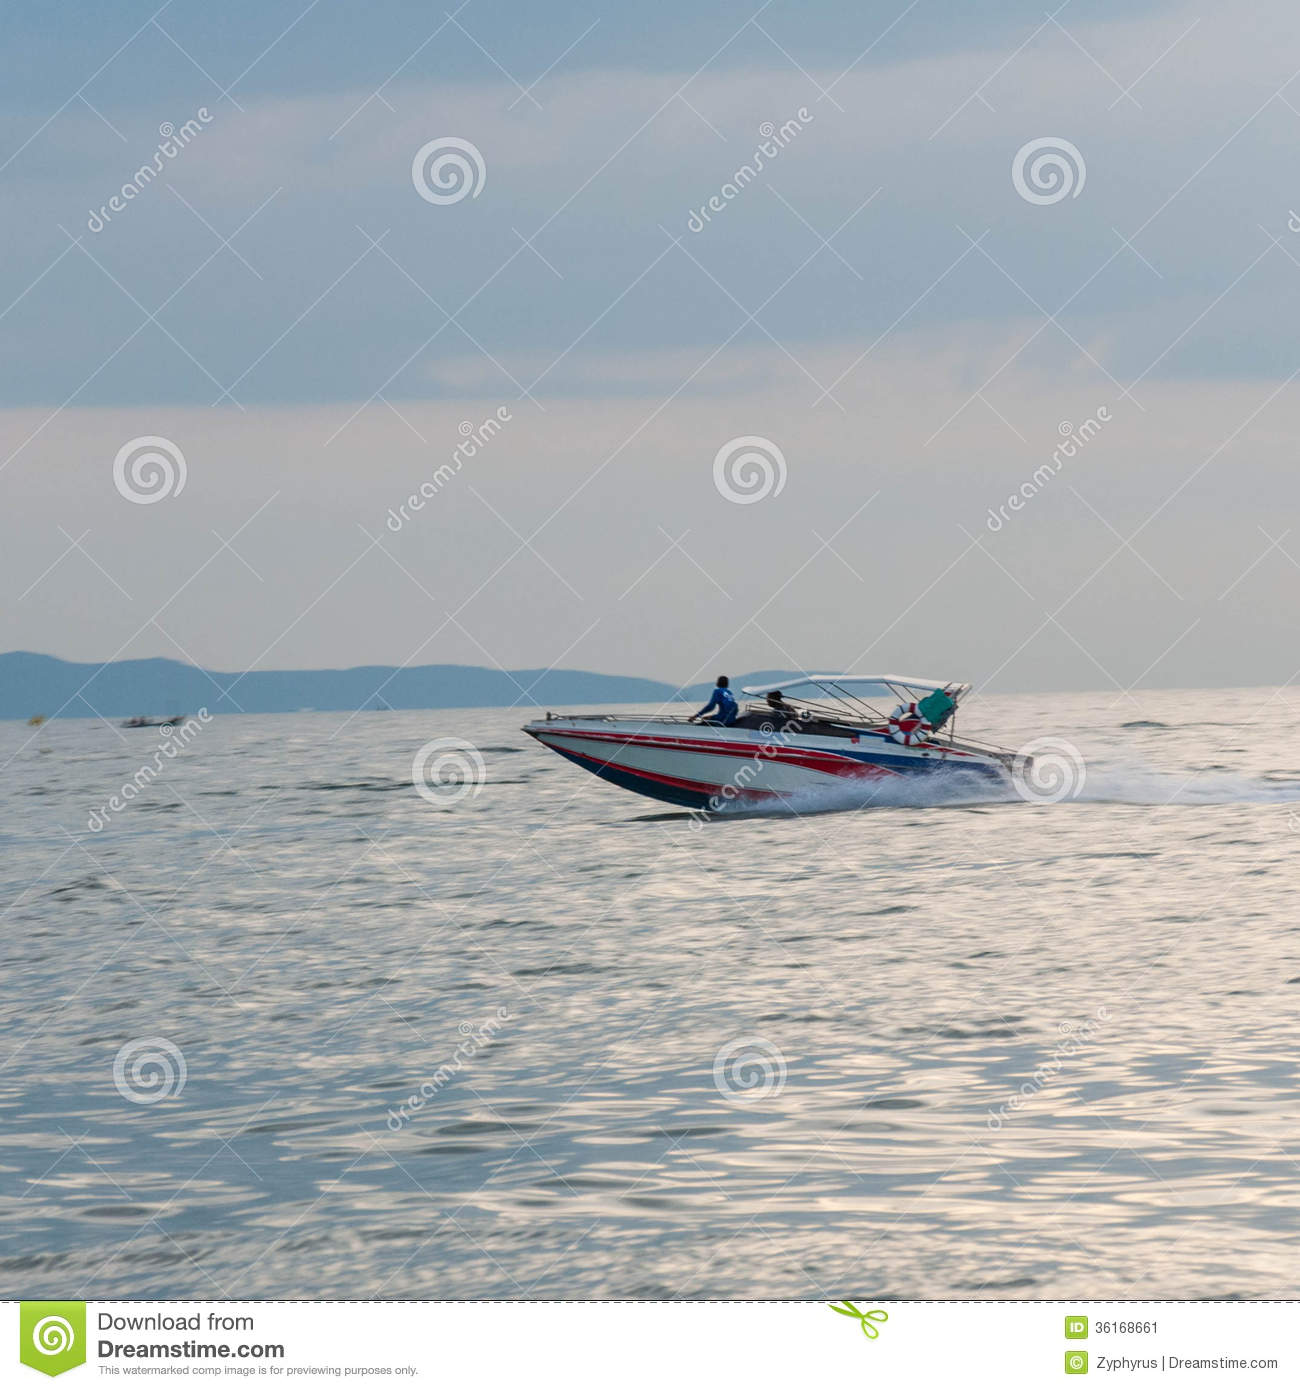 Motor Boat Driving Motion (Speed Boat) Stock Image.